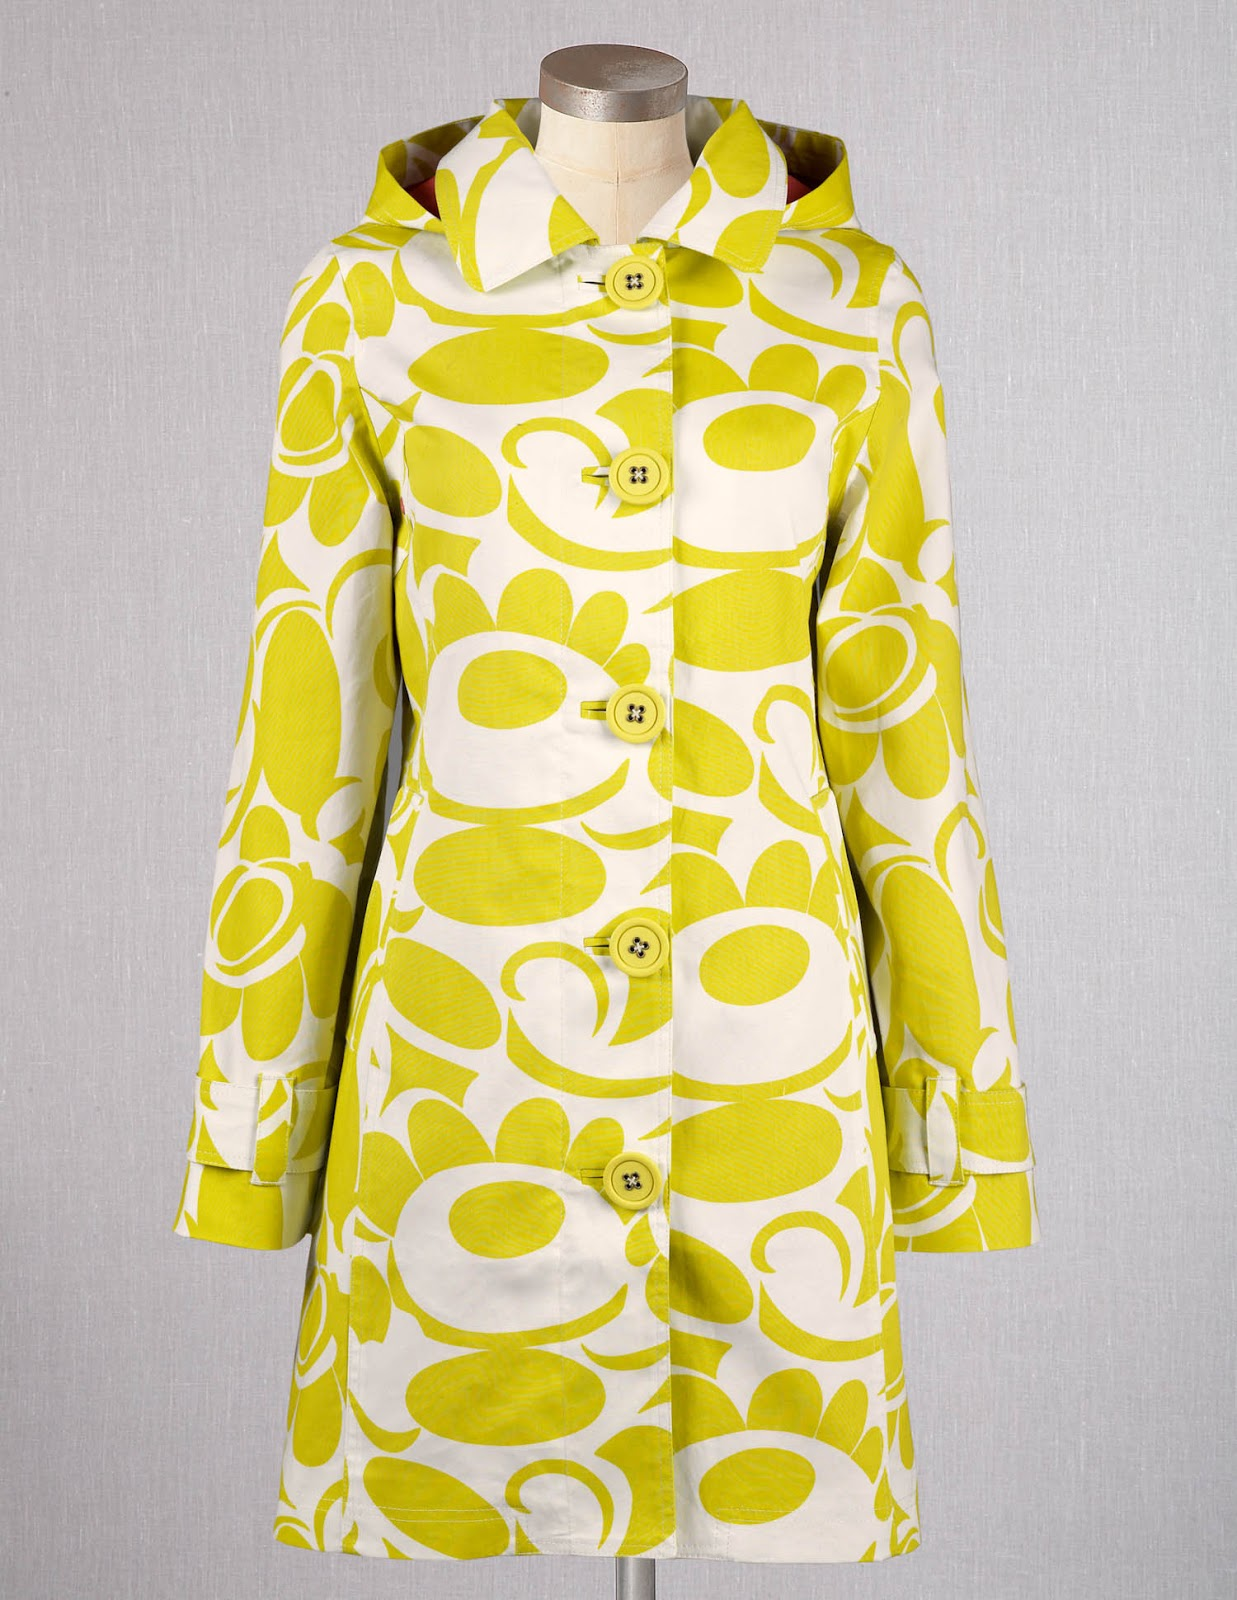 Breakfast at anthropologie 25 off boden catch of the day for Boden yellow raincoat